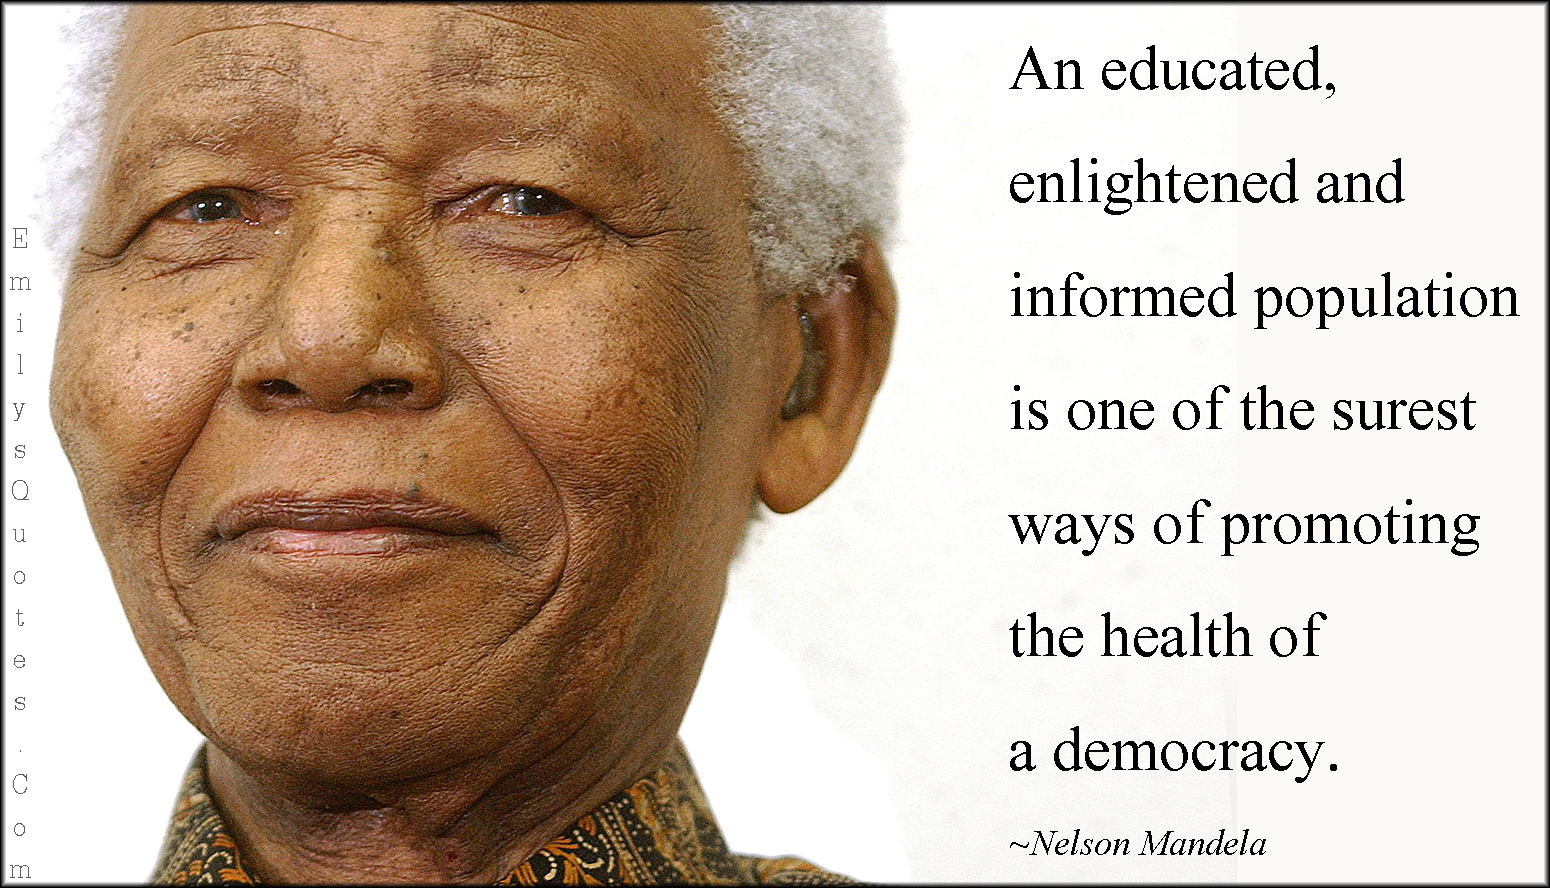 Democracy Quotes An Educated Enlightened And Informed Population Is One Of The